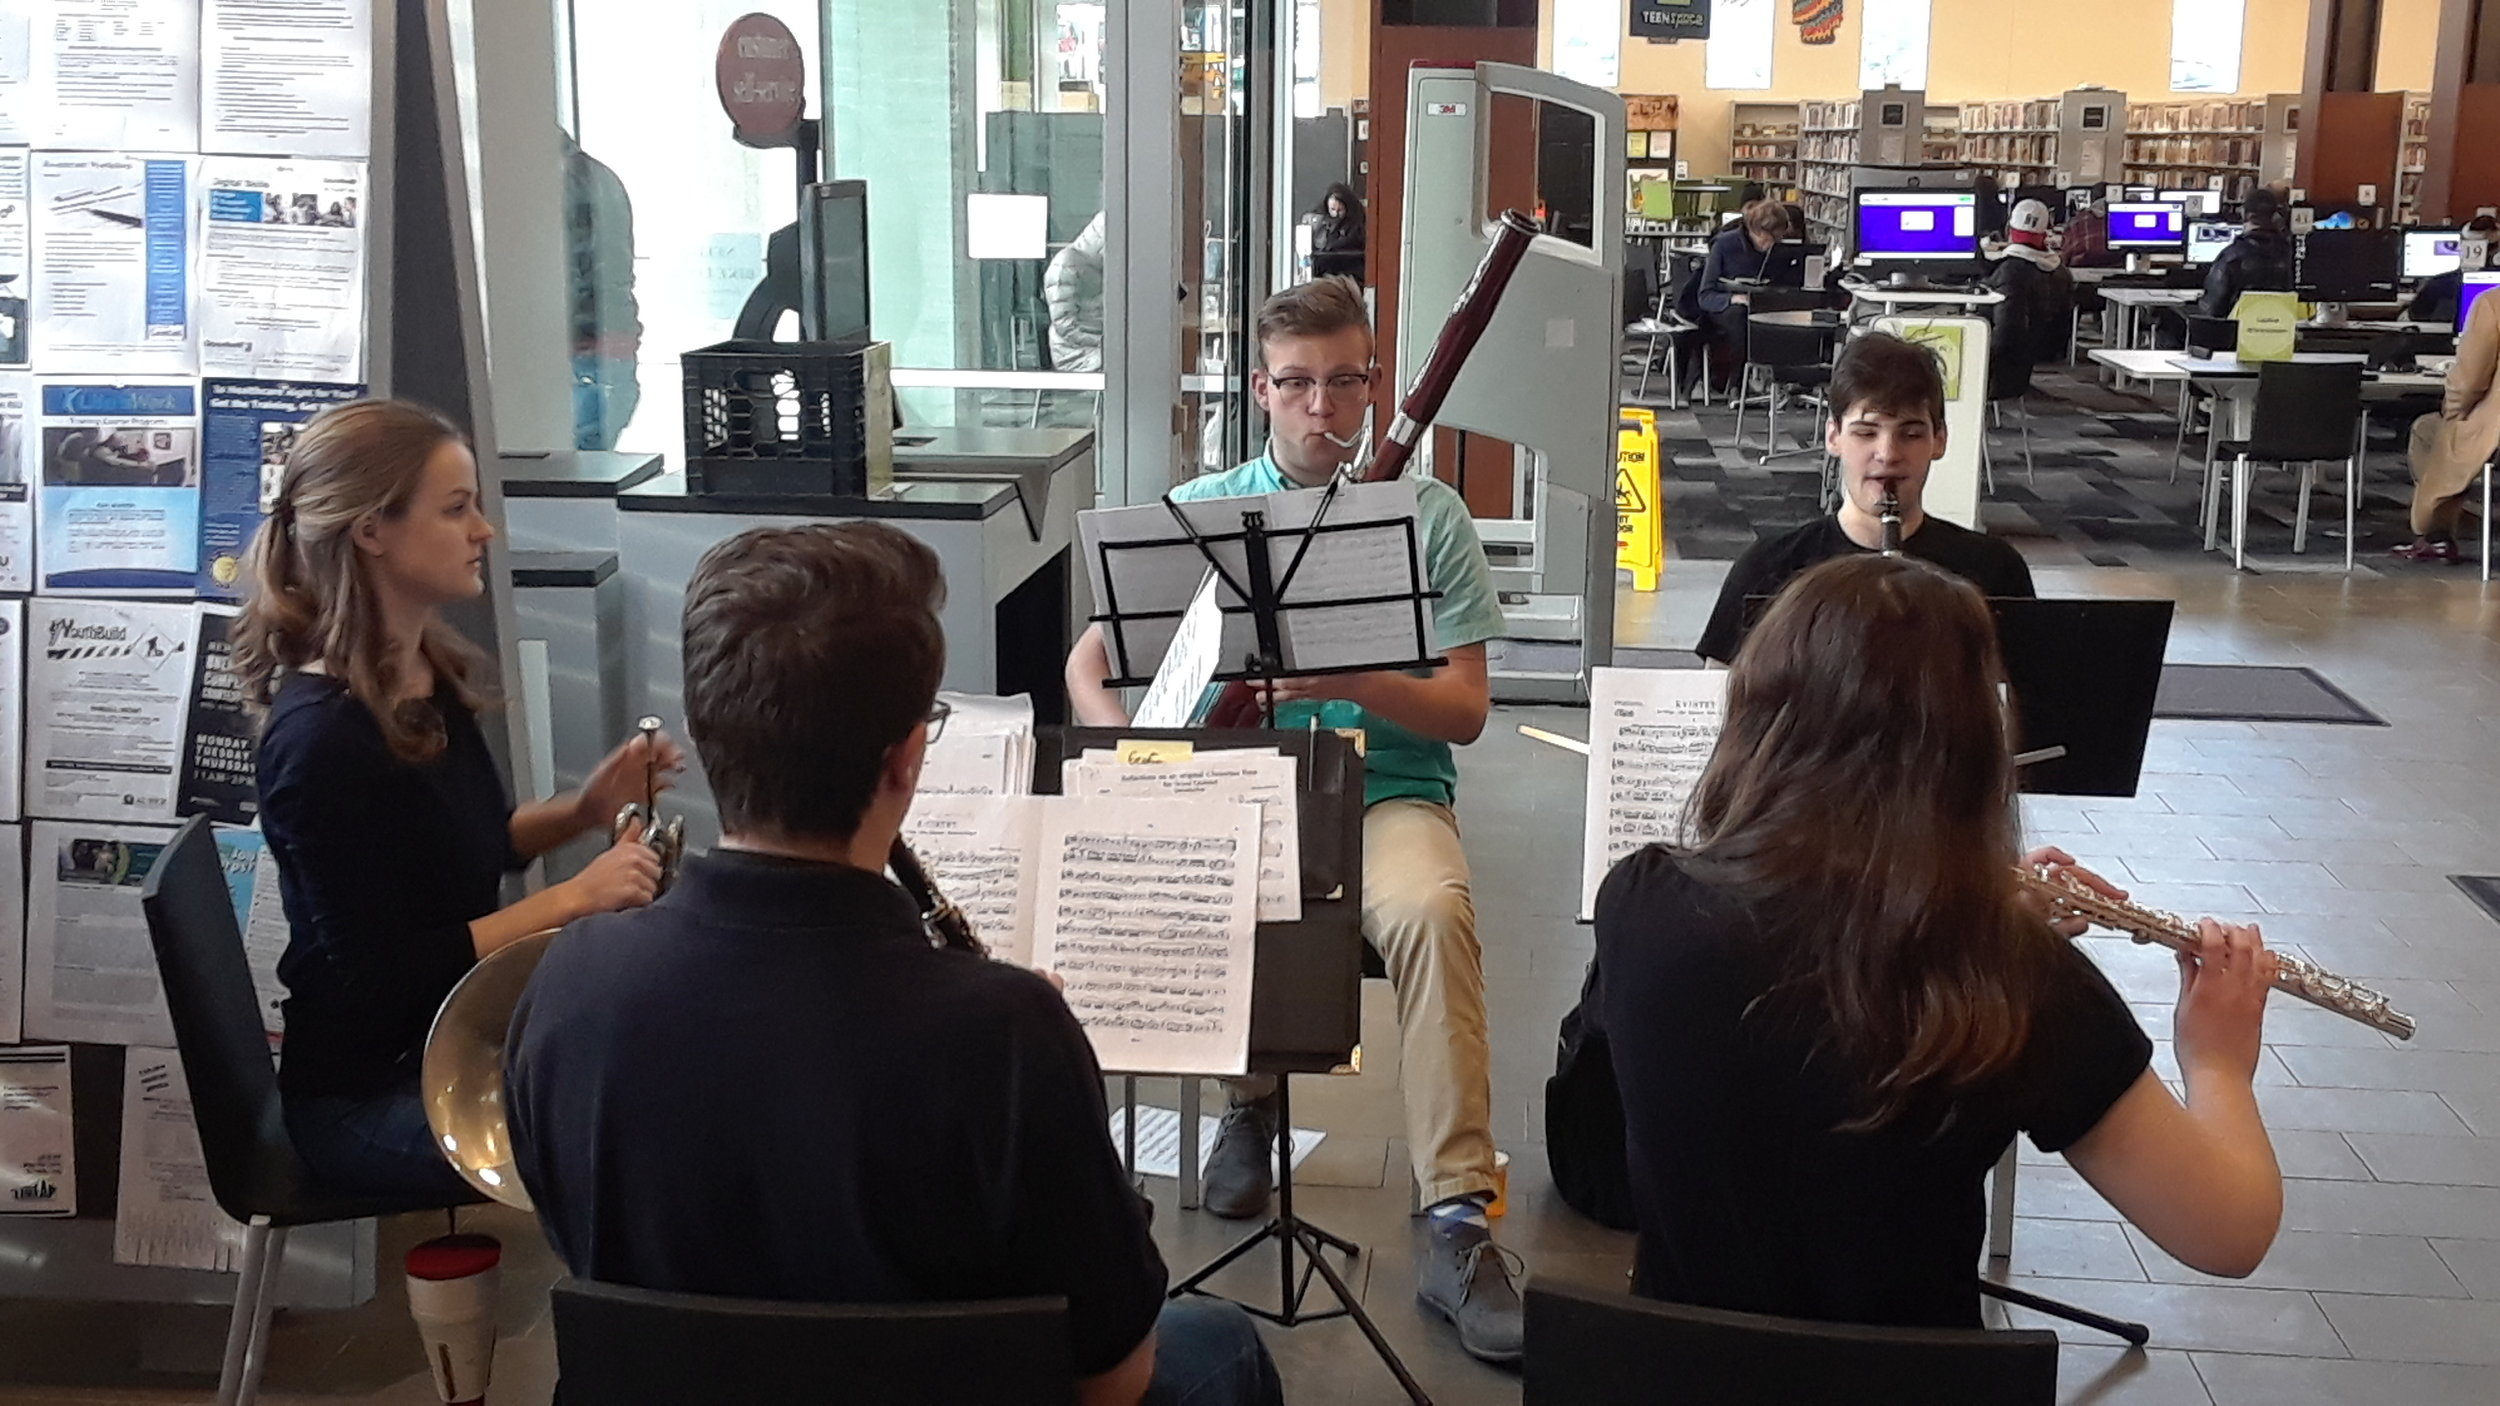 Holiday Pop-Up Concert - Sunday, December 9, 2018 - Wild Ginger Quintet - Carnegie Library of Pittsburgh AlleghenyThe Wild Ginger Quintet—Dinah, Geoffrey, Susan, Brody, and Nathan—performed a quintet by Carl Nielsen for library visitors.